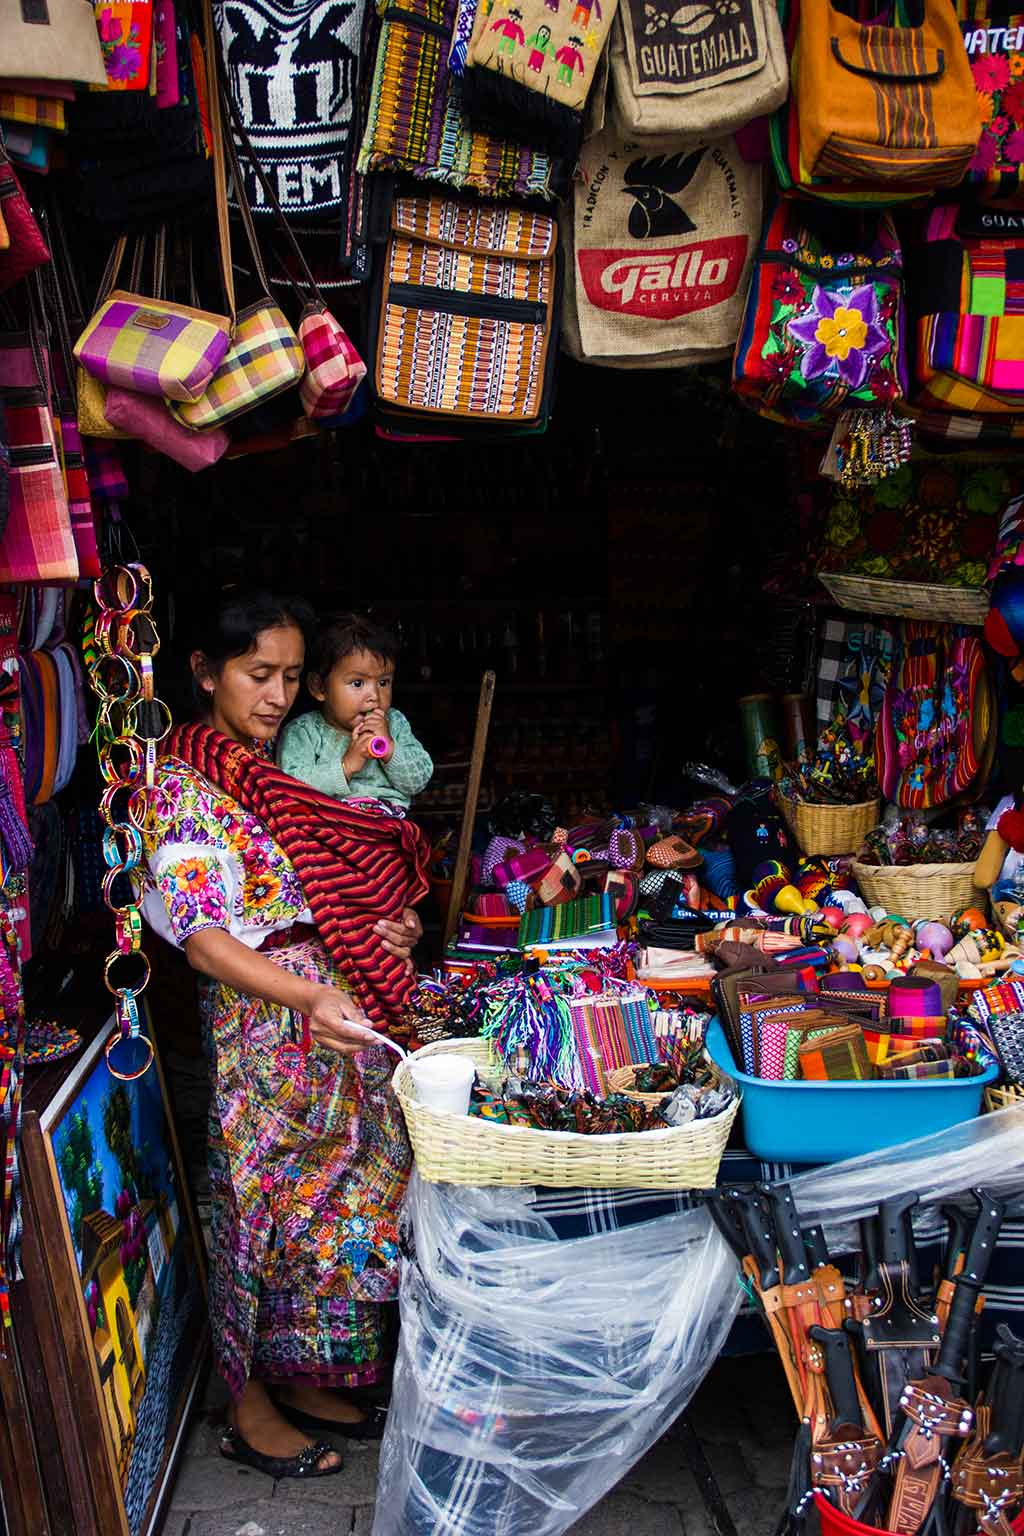 drive-swim-fly-guatemala-central-america-el-faro-antigua-missions-trip-documentary-colorful-street-market